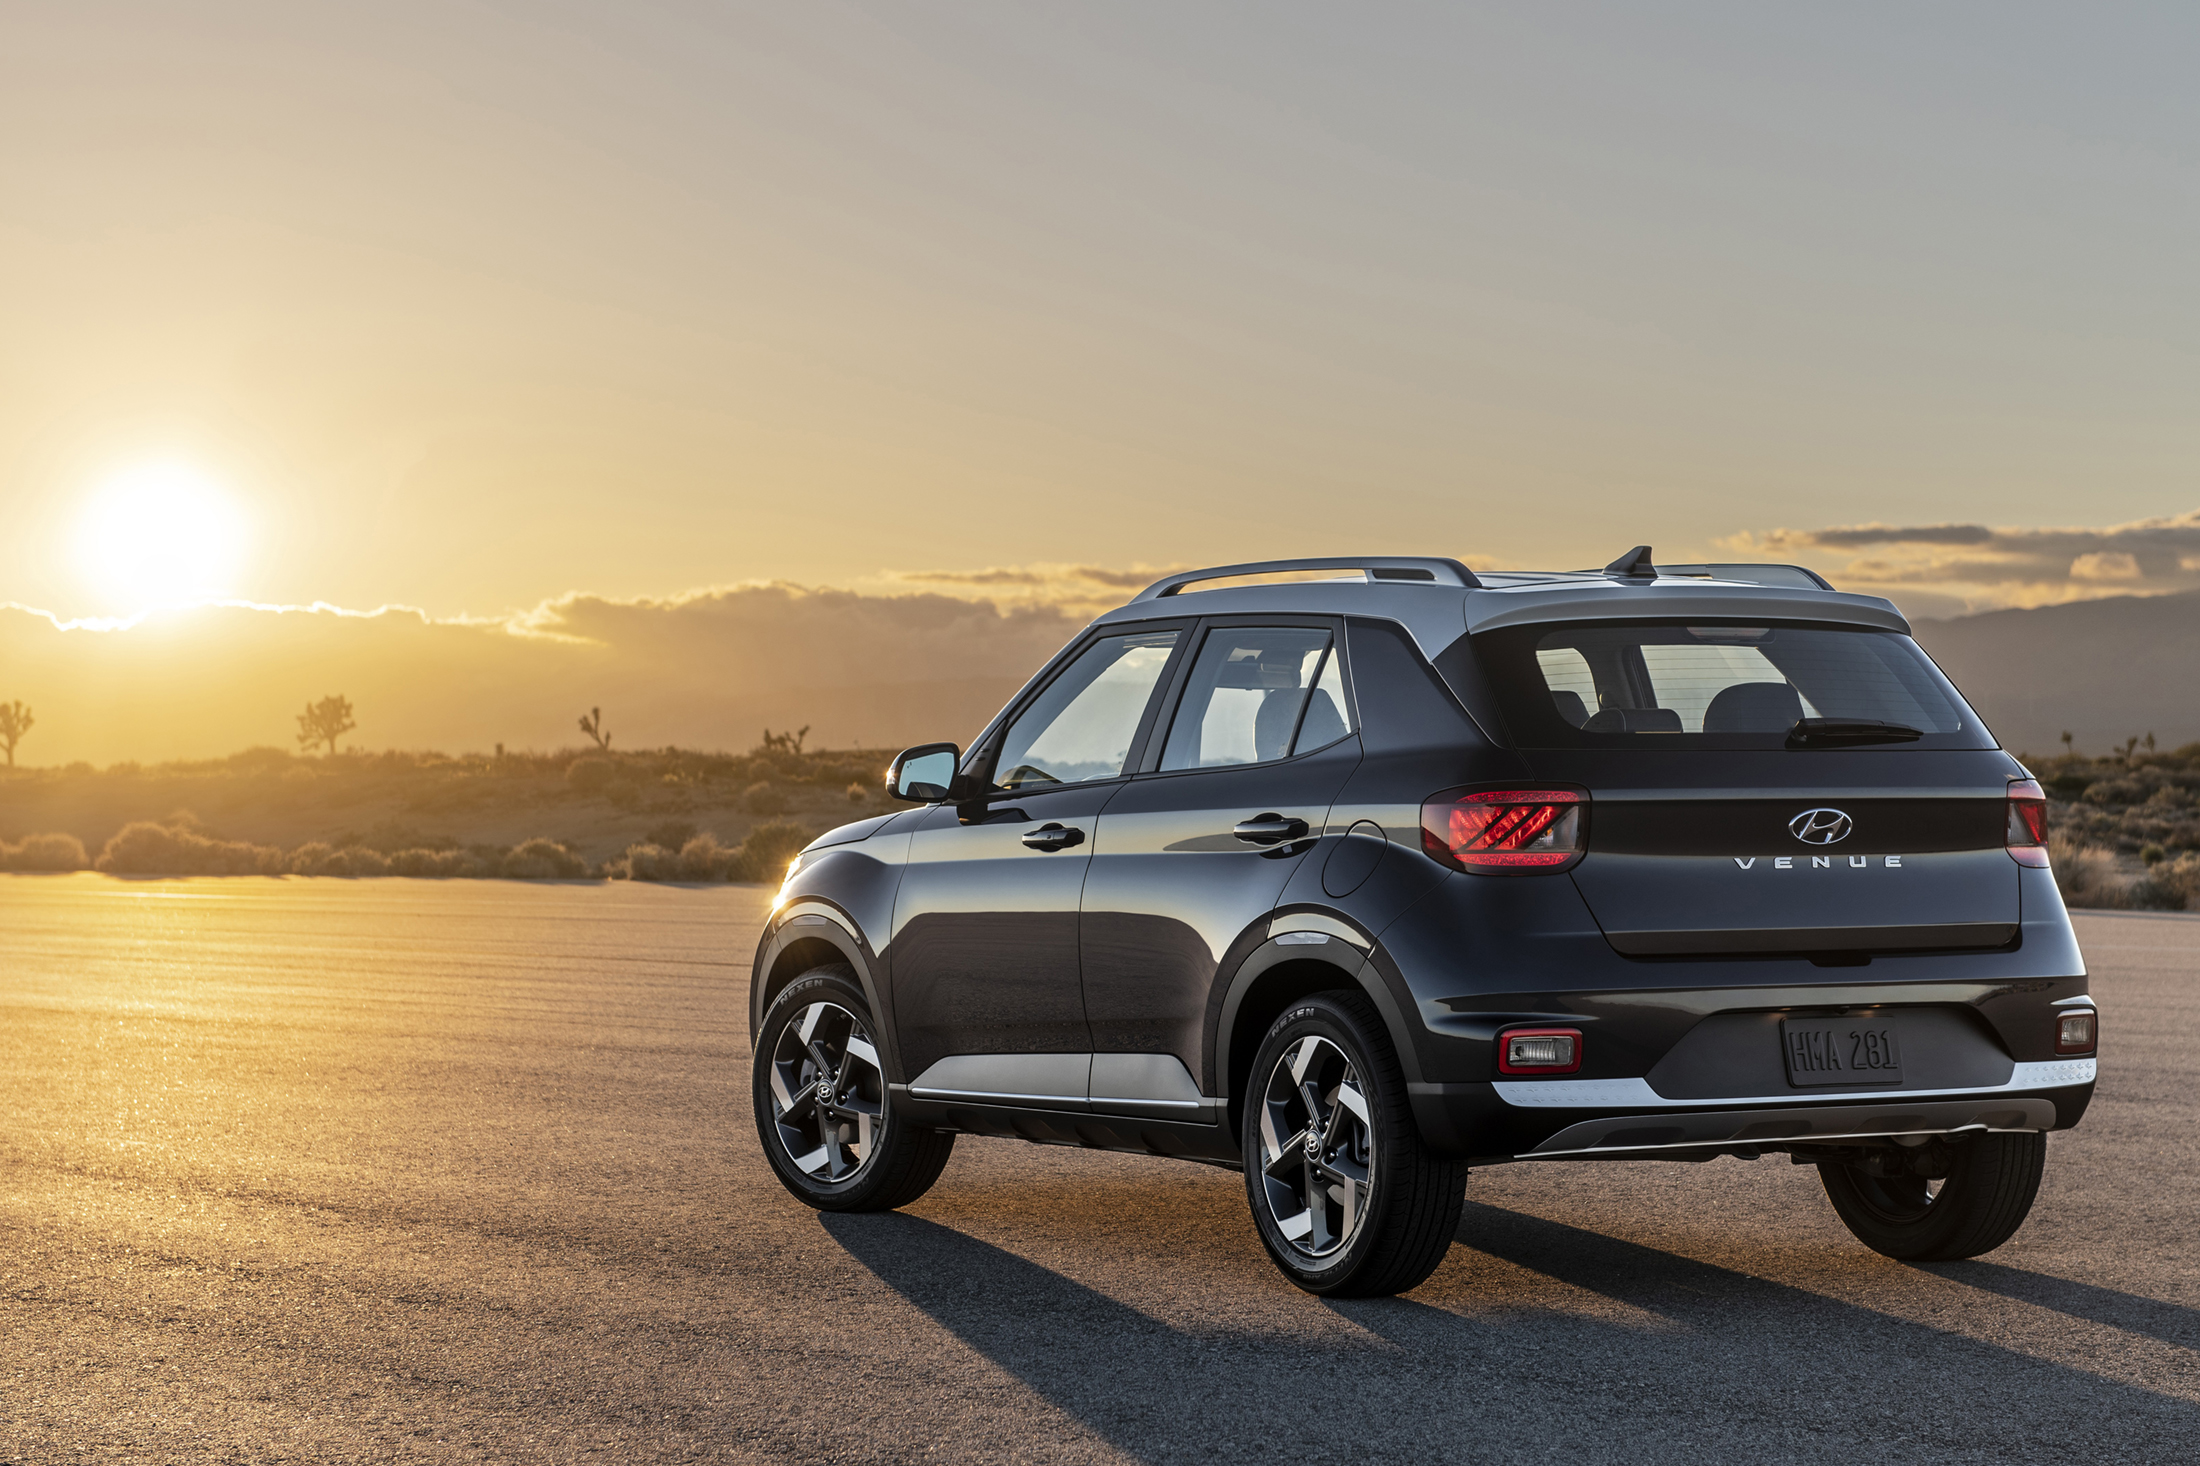 Best Small Suv For Towing 2020 The Best 2020 SUVs: Top Vehicles From NYIAS | GearJunkie